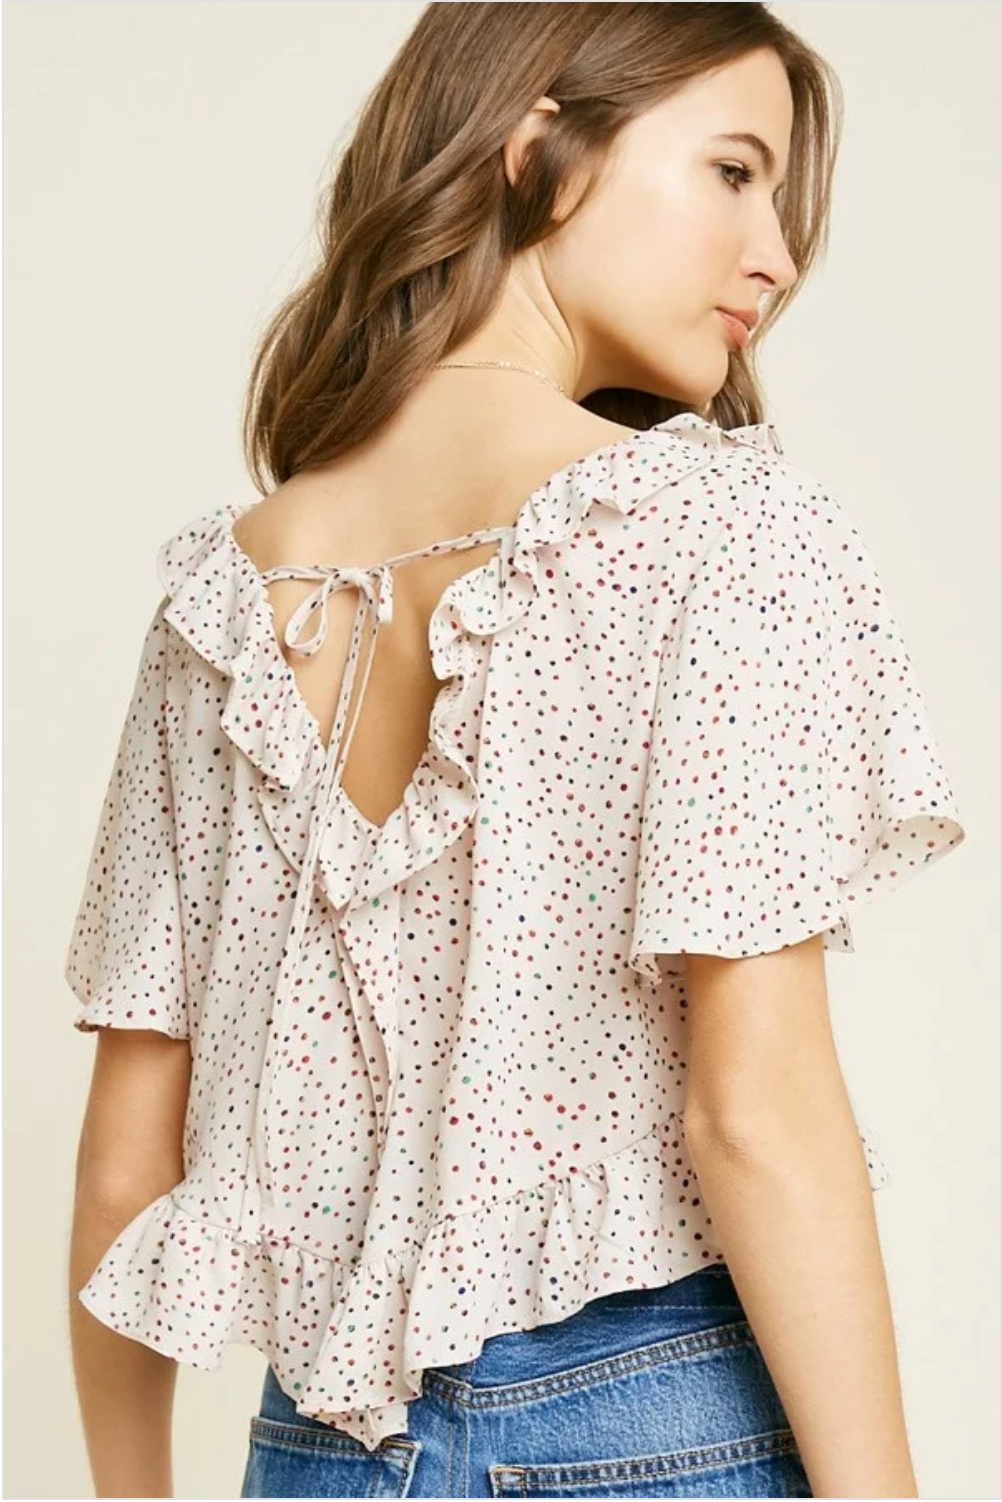 Ruffle Polka-Dot Crop Top - Sswing Lifestyle Company